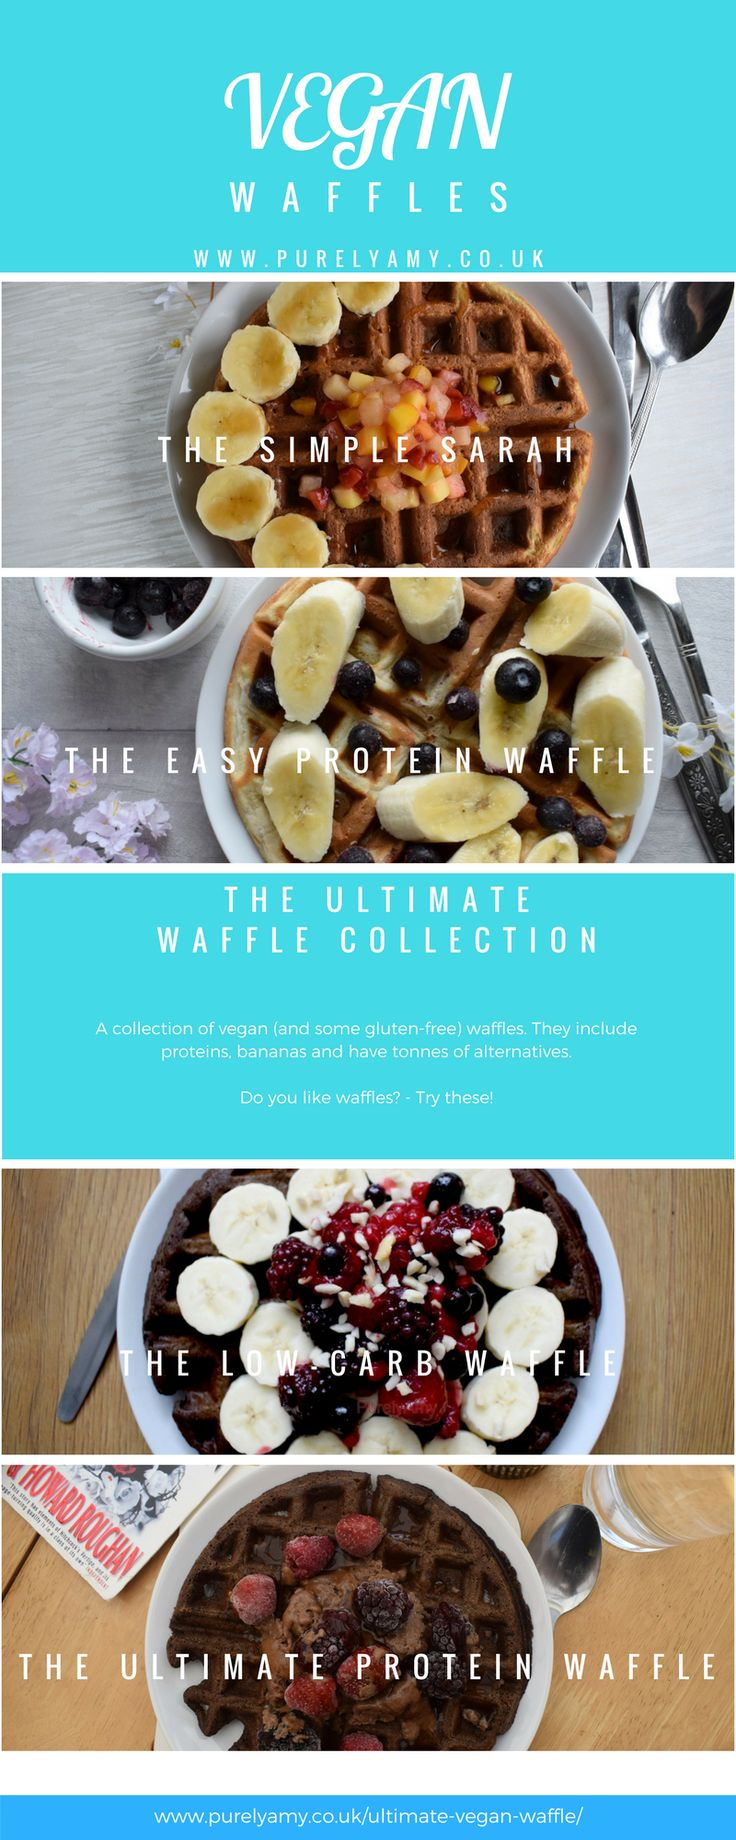 Waffles waffles and more waffles -   Try some for breakfast, fancy chocolate? Have them! They're less than 200 calories!   #veganwaffles #veganfood #dairyfree #glutenfree #easyfood